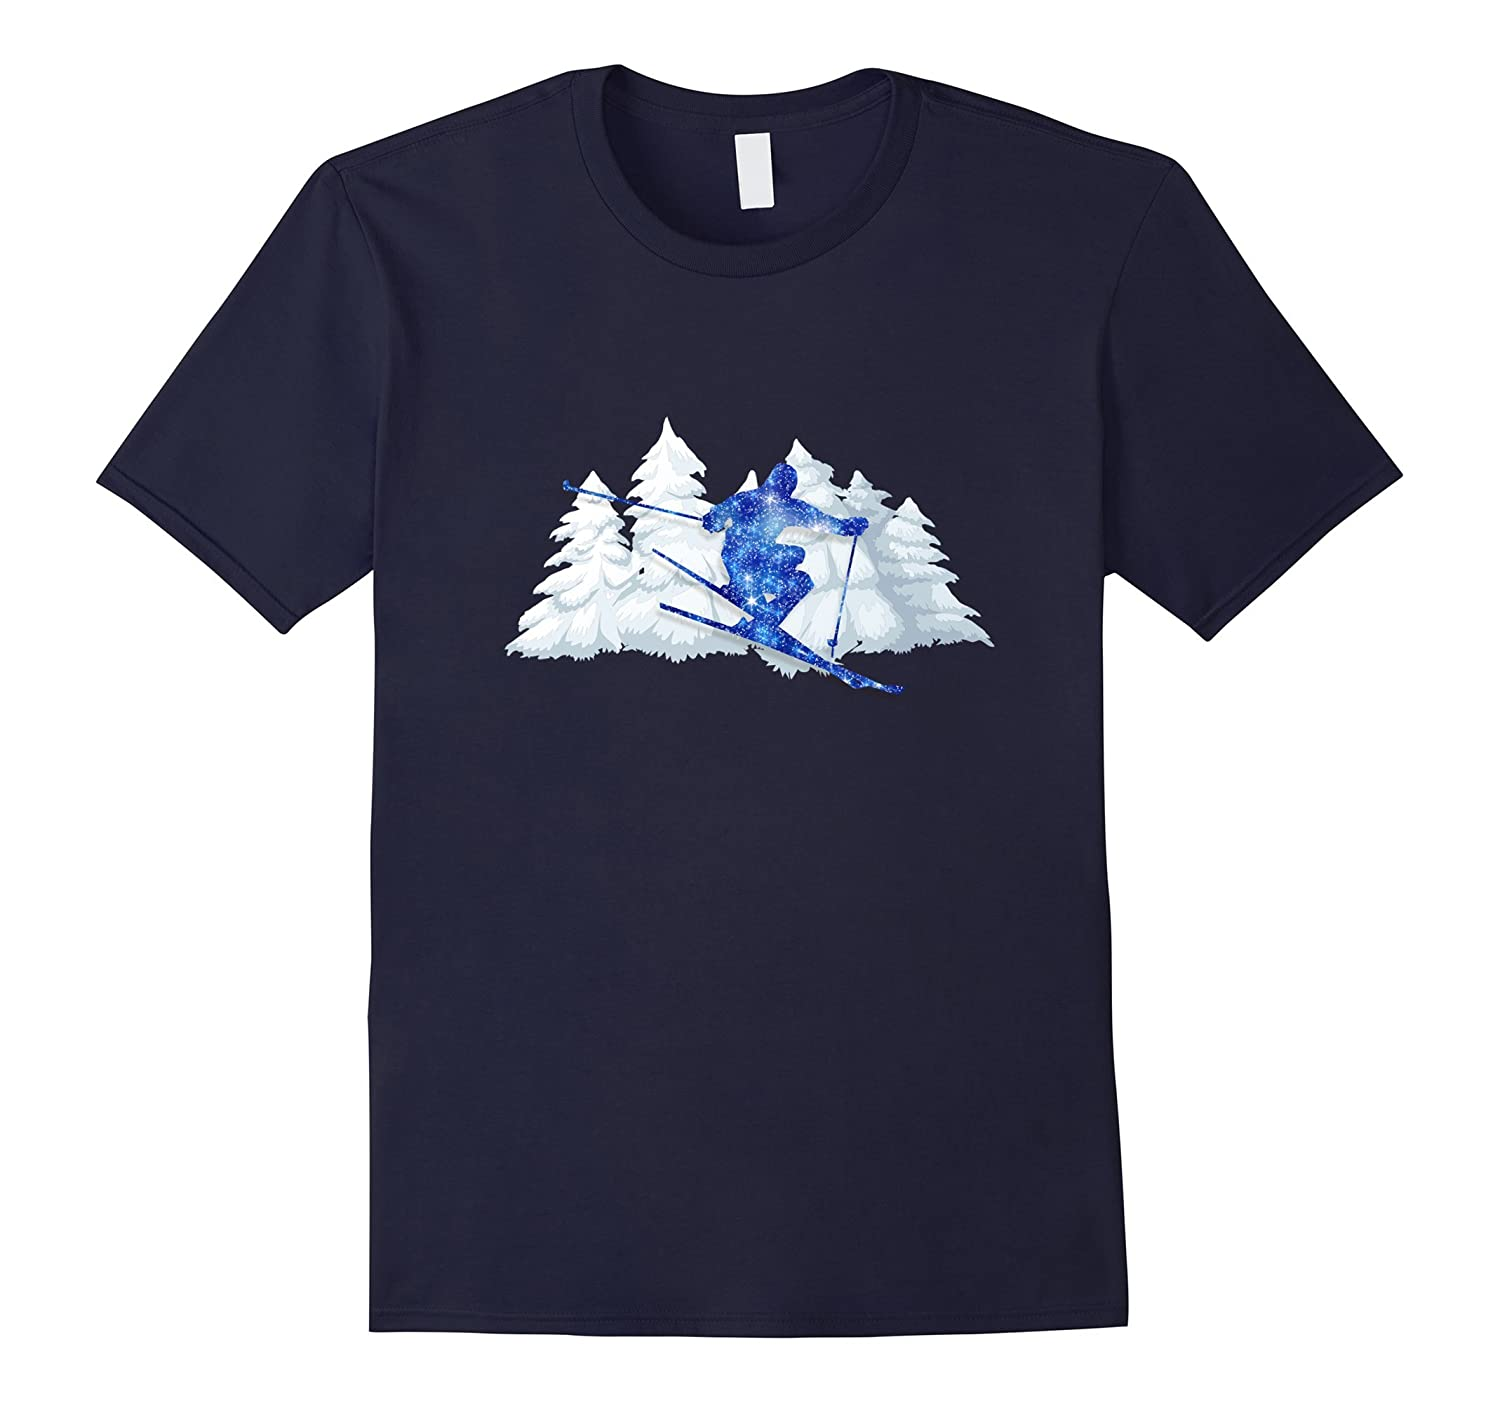 Snow Skiing T Shirt for Christmas Holiday Season-FL